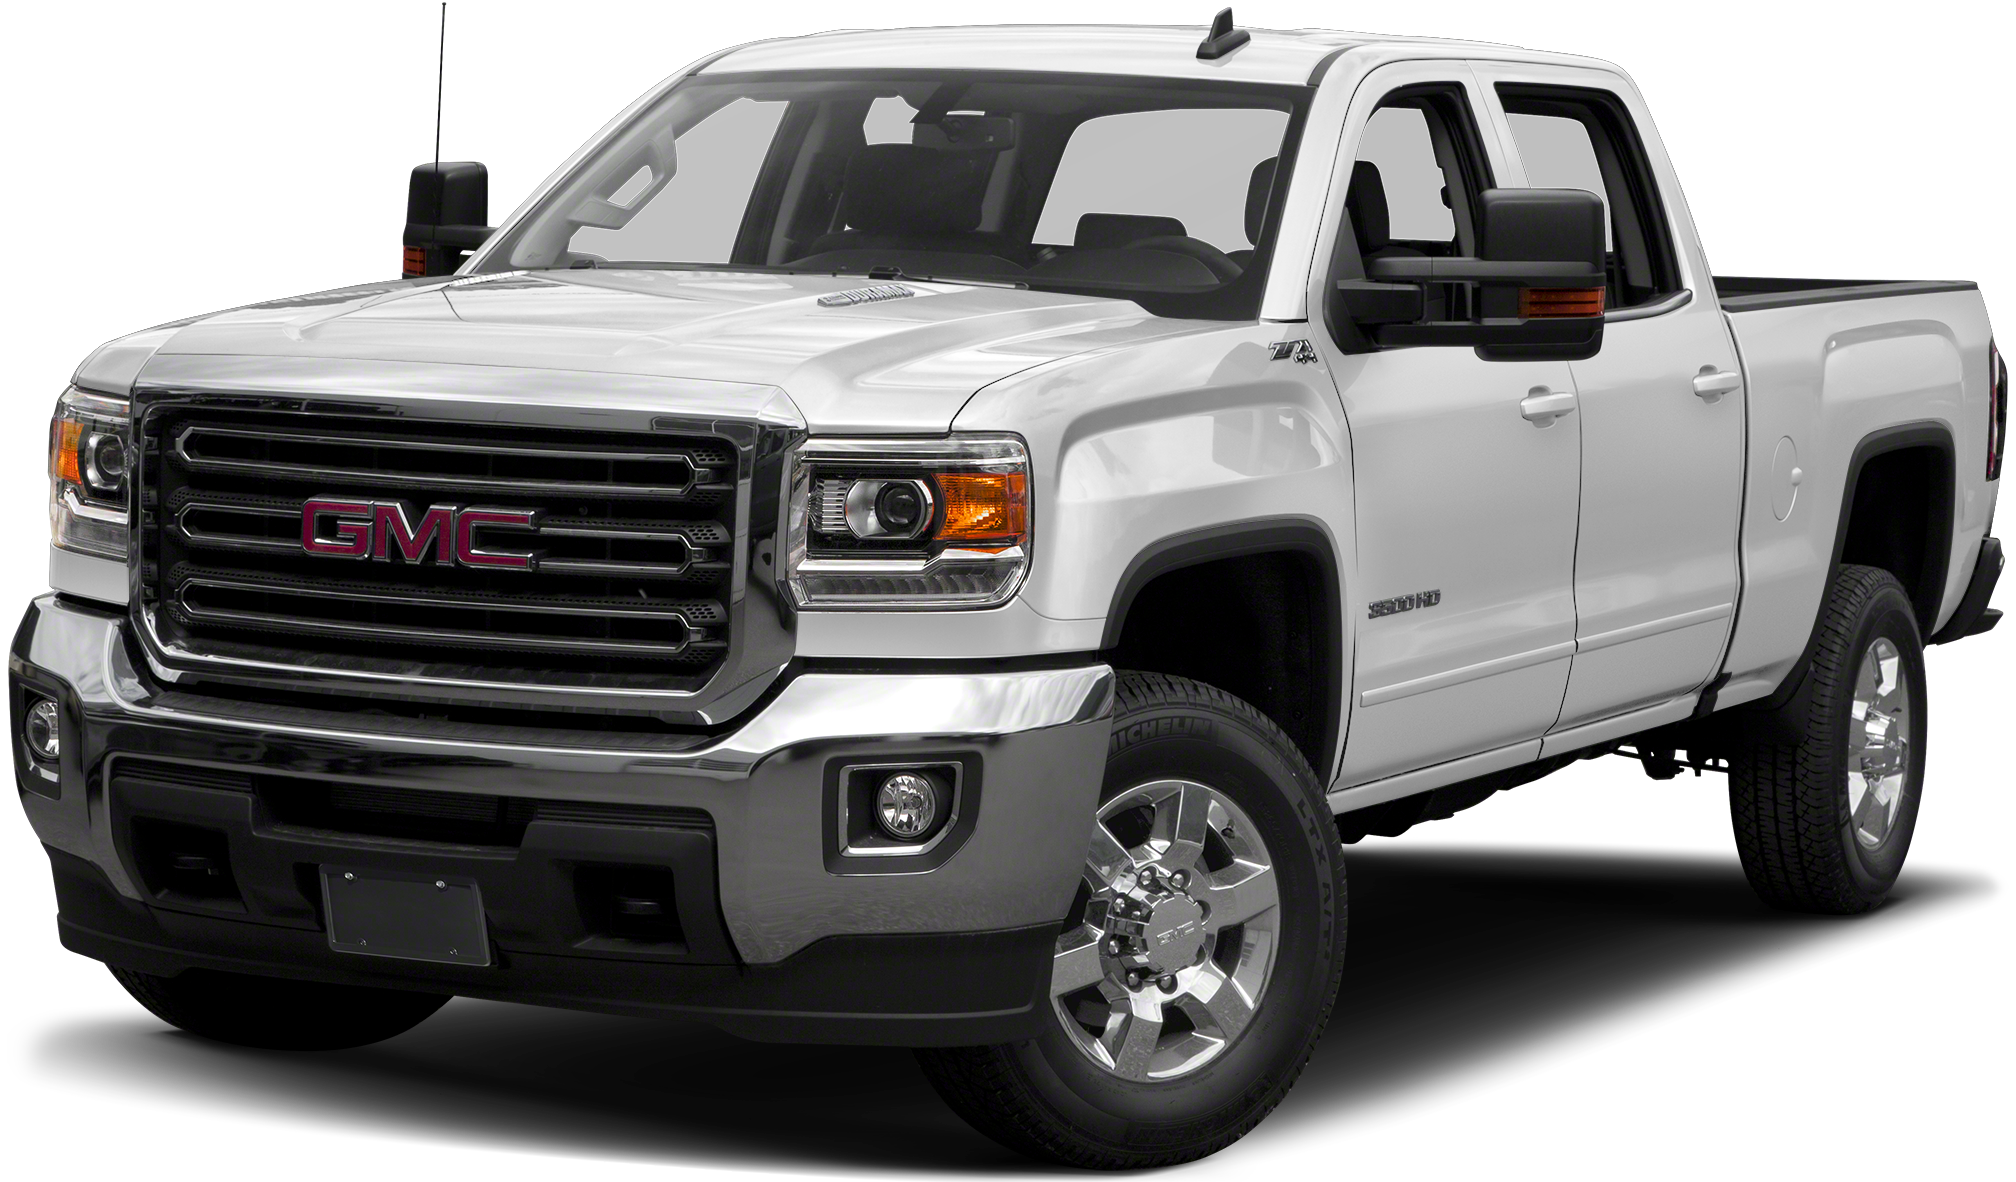 dodge truck incentives 2019 2019 GMC Sierra 3500HD Incentives, Specials & Offers in